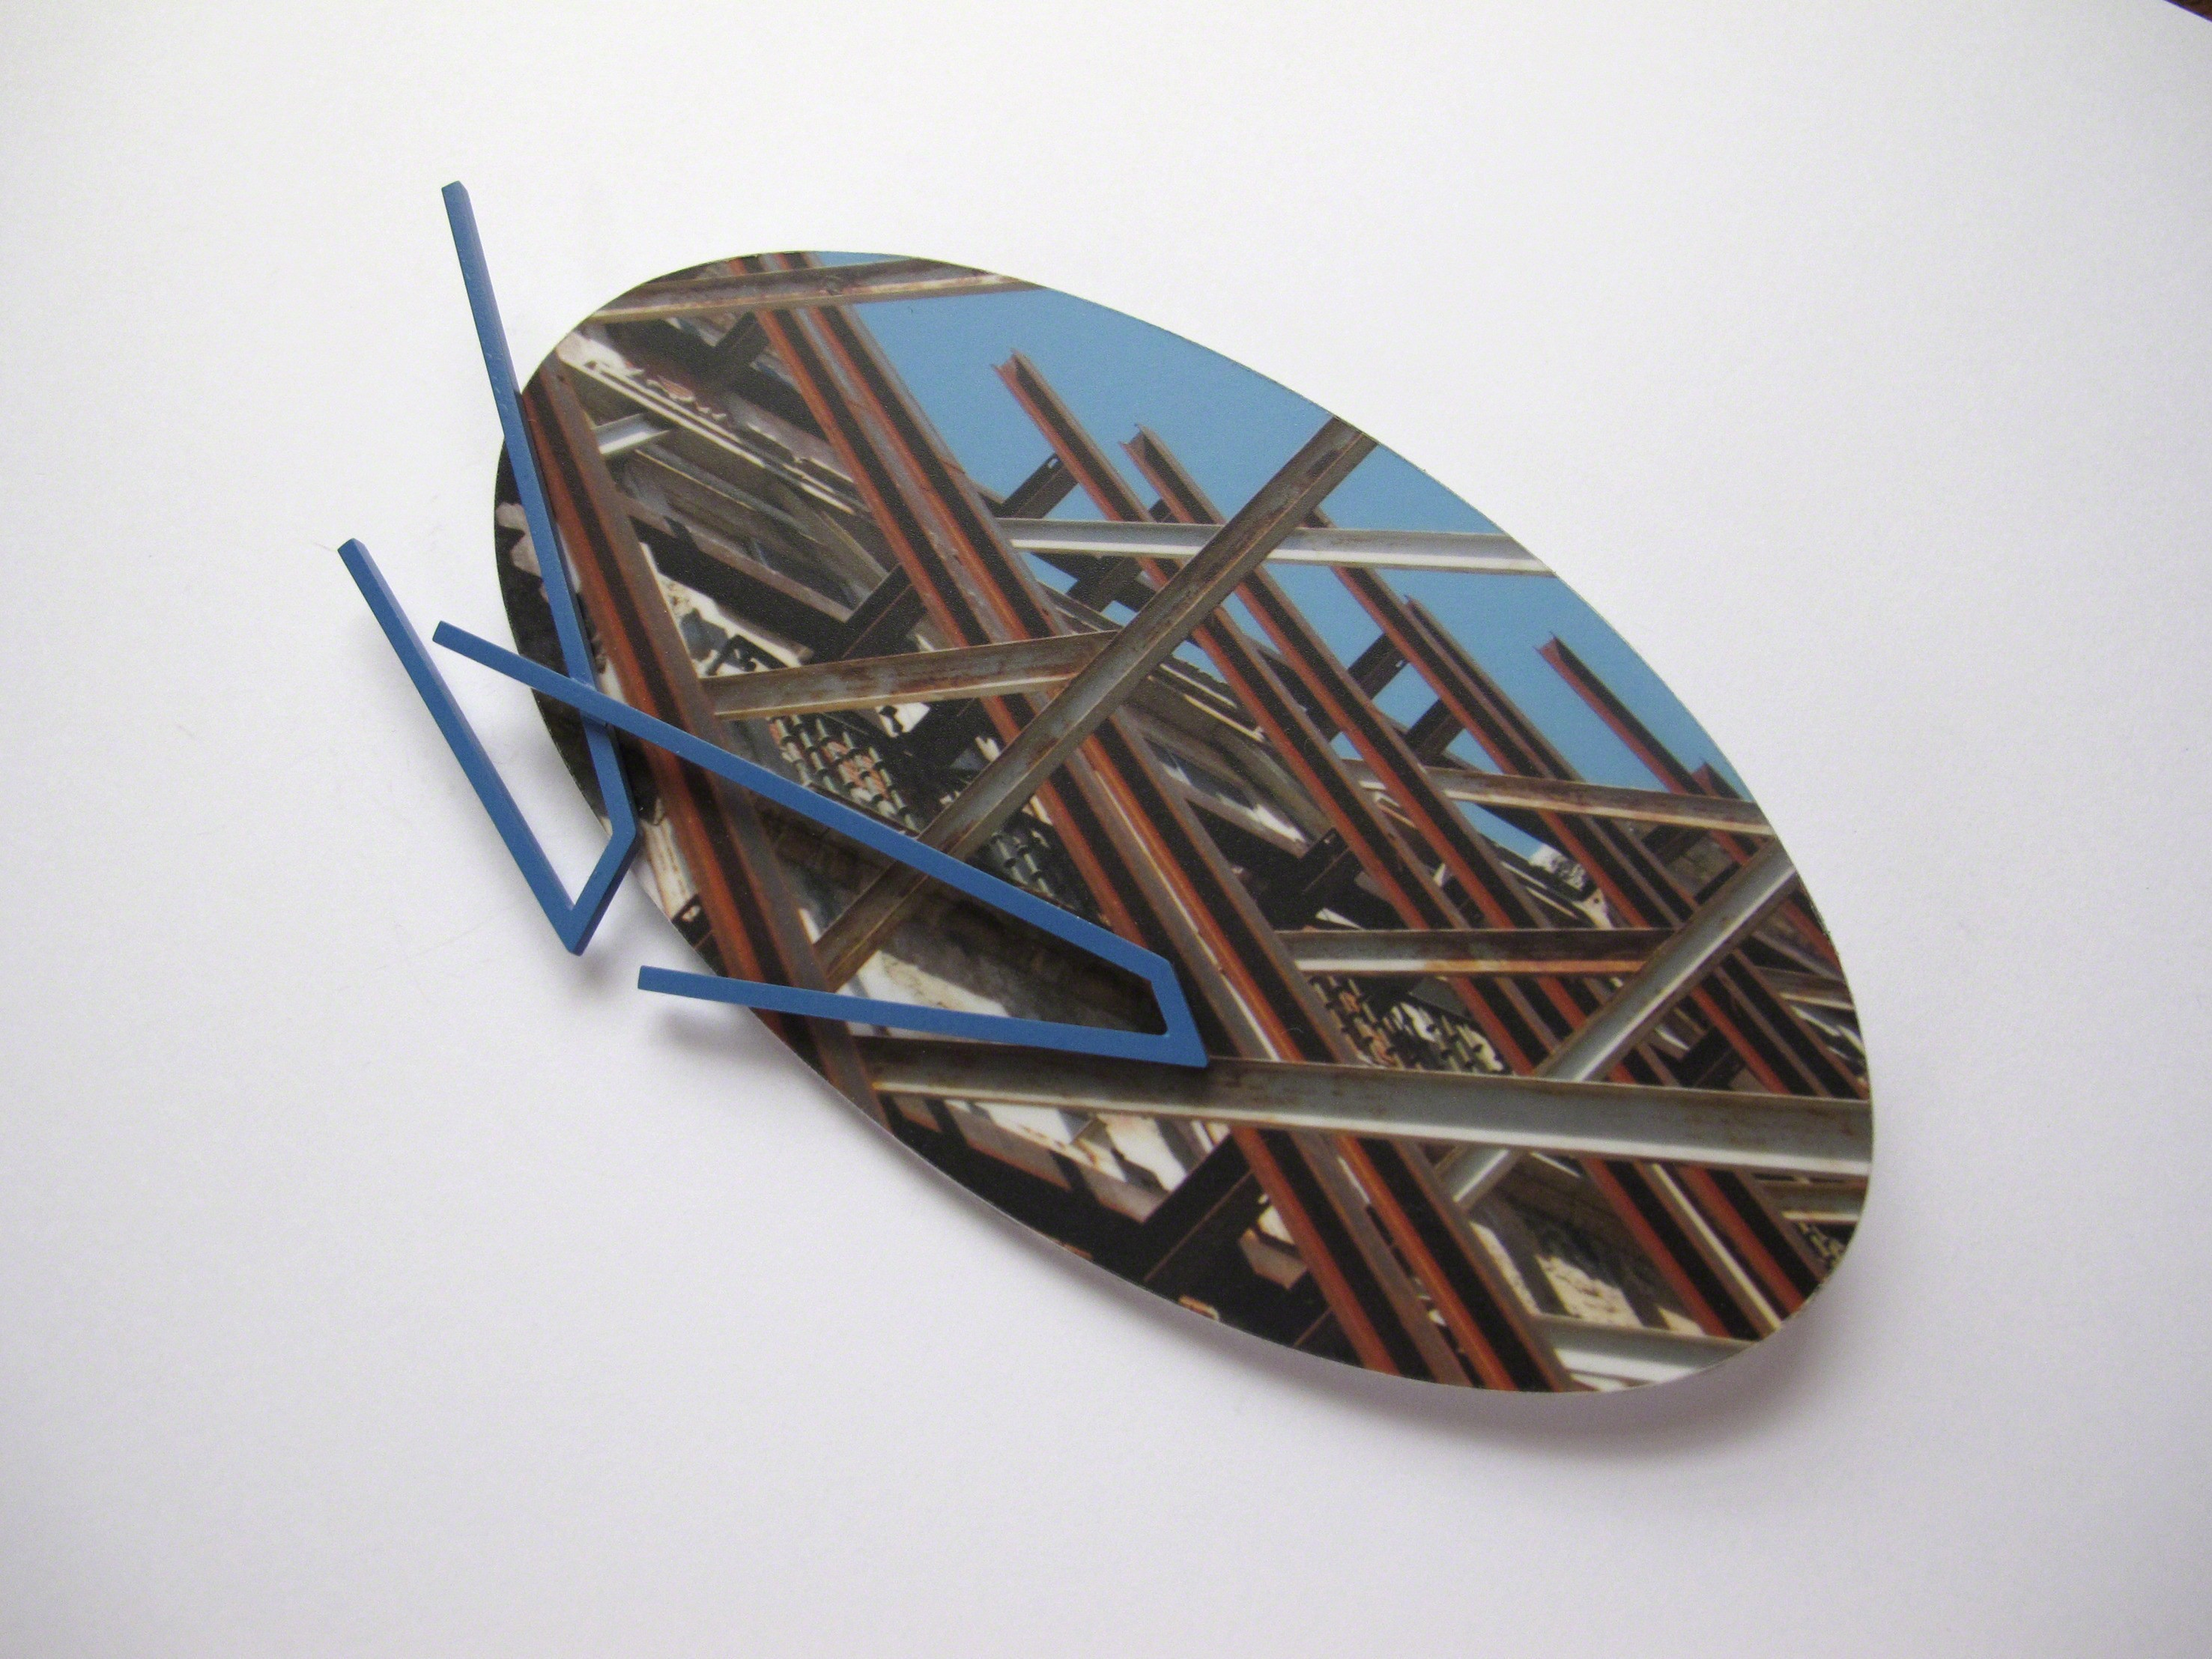 , 'Brooch,' 2011, Museum of Arts and Design